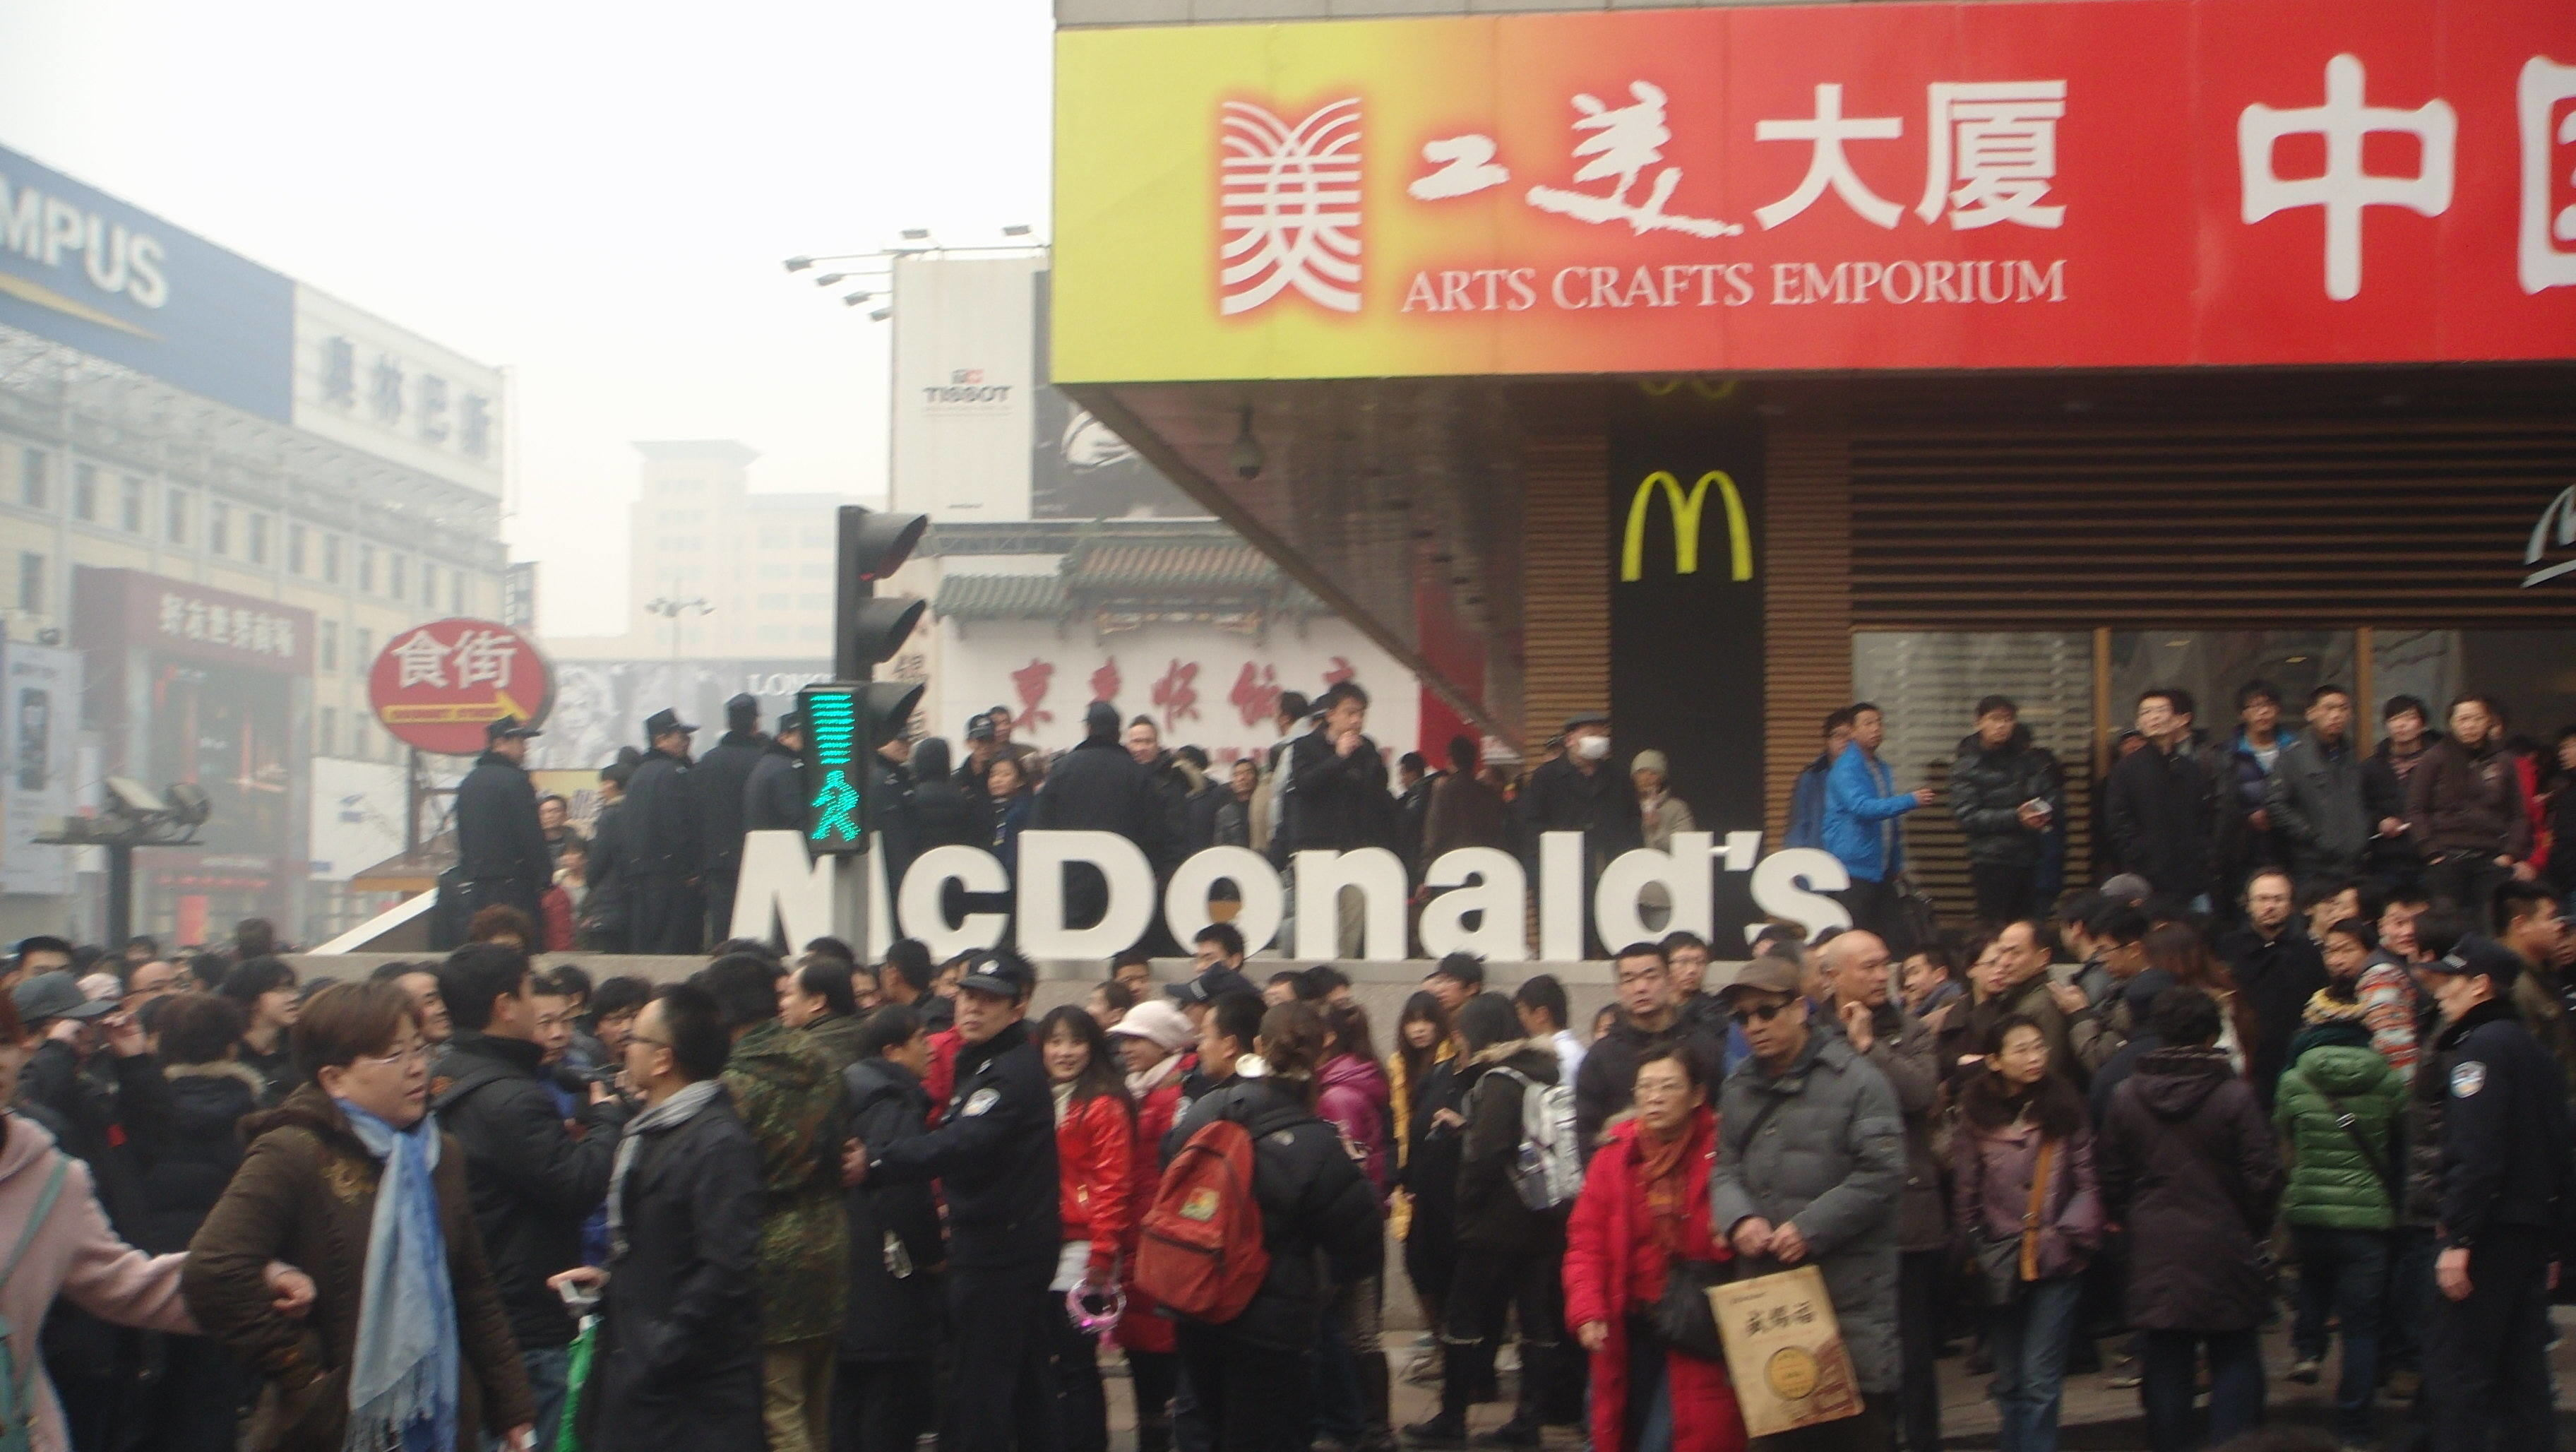 mcdonald in china Mcdonald's entered in china in early 1990's at that time, there weren't many western food restaurants most chinese considered mcdonald's along with kfc as the symbol of western food and thought hamburgers and fries are just what people in the west eat.